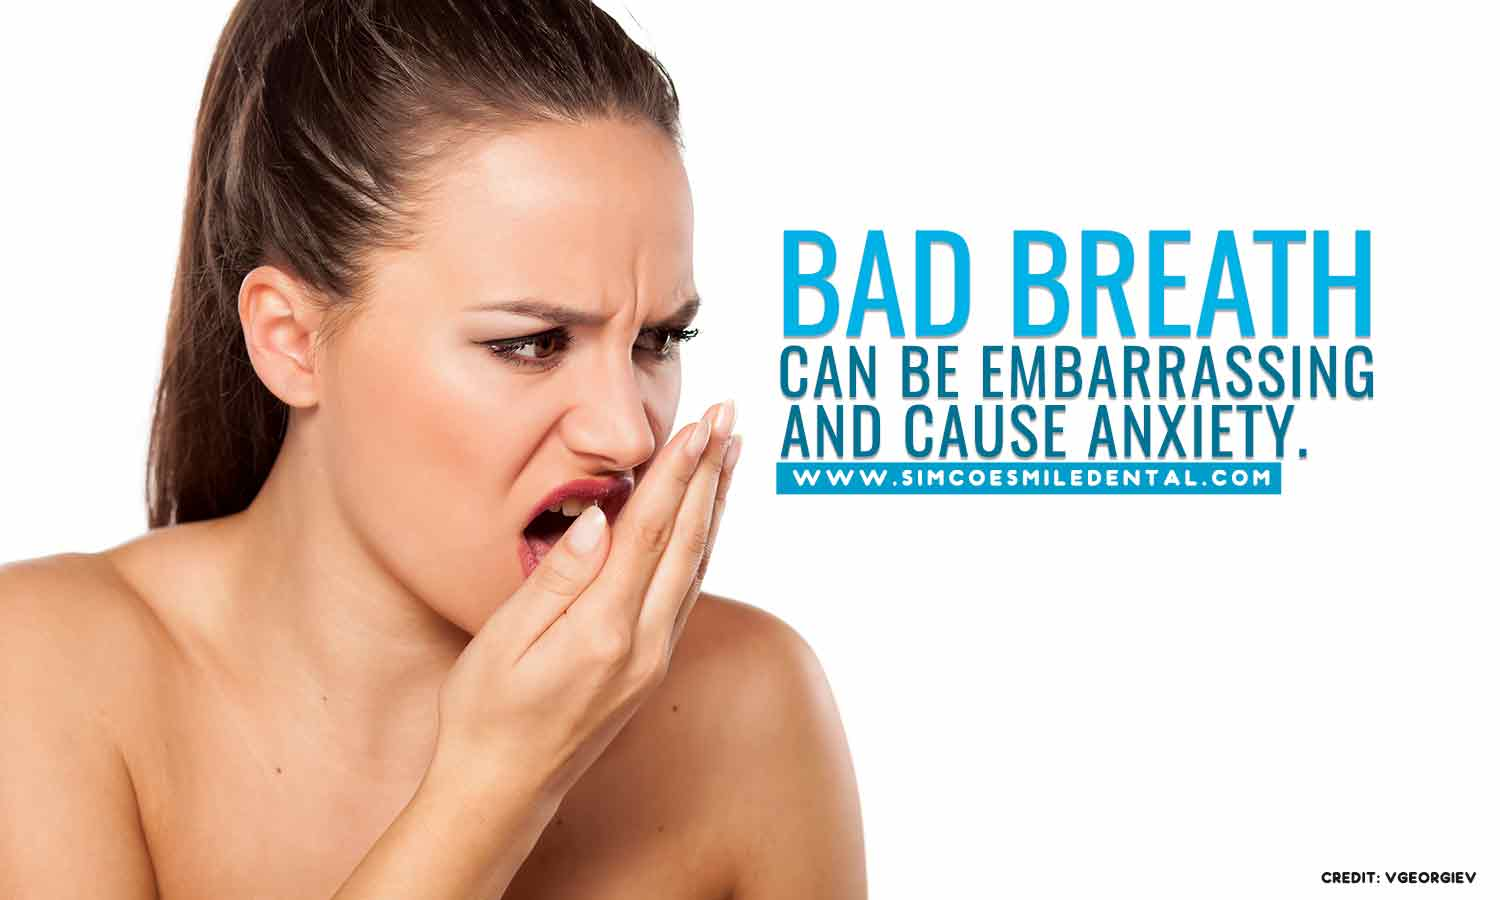 Bad-breath-can-be-embarrassing-and-cause-anxiety Dental Problems You Should Never Ignore